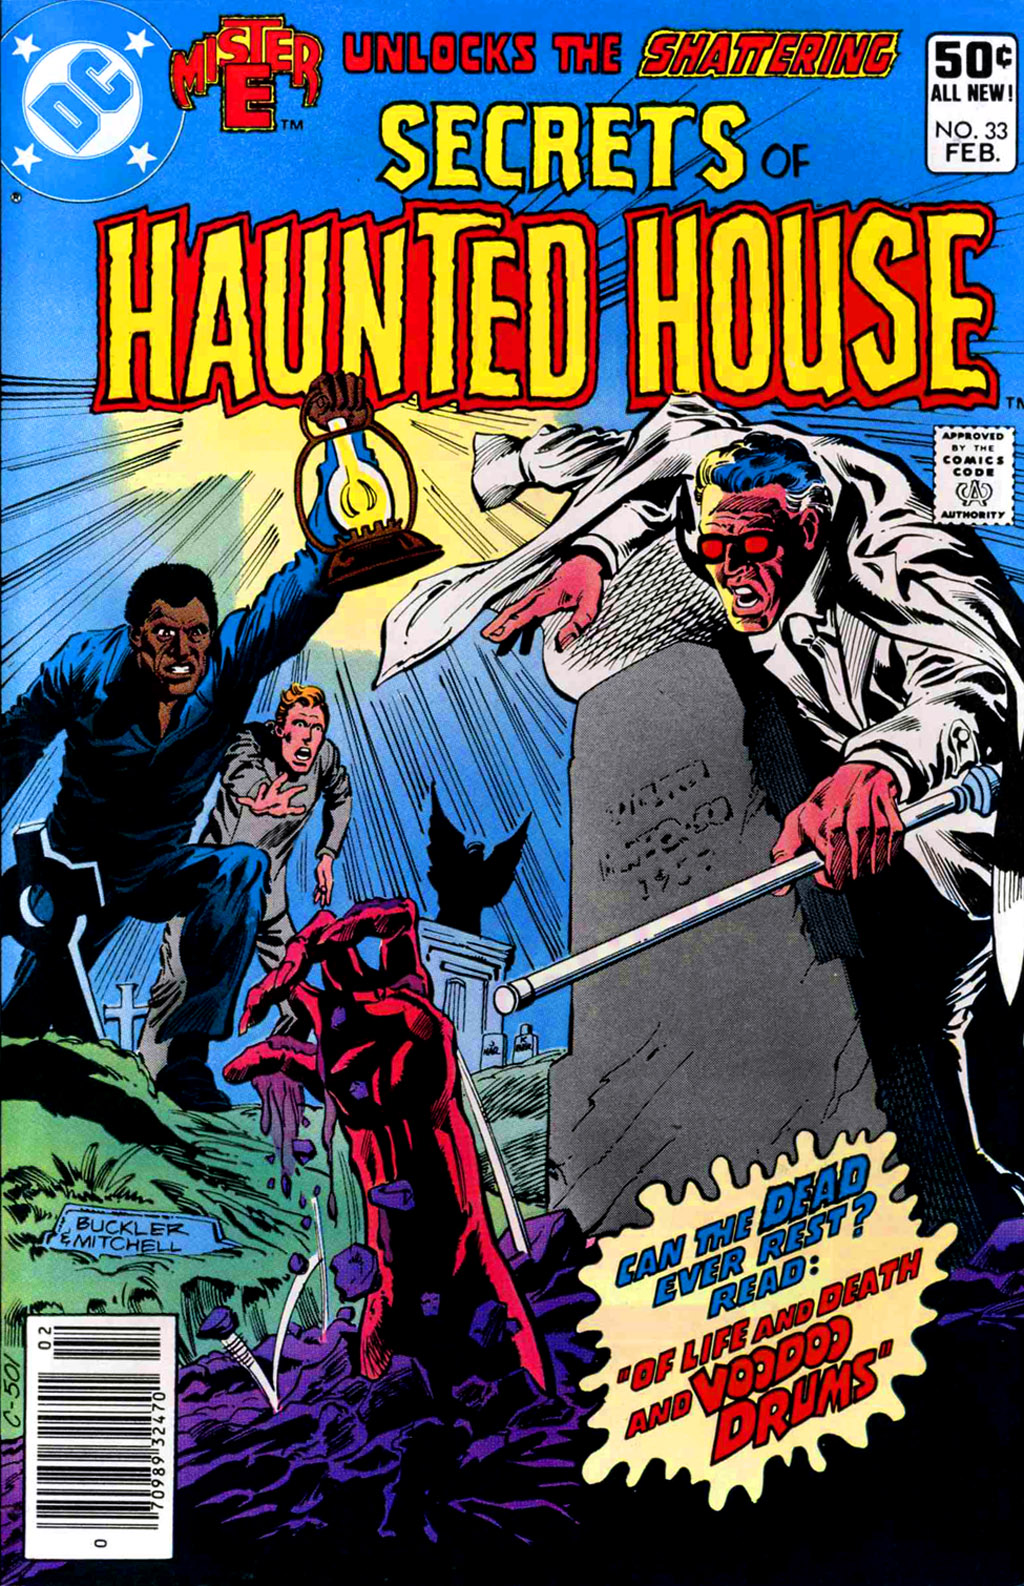 Read online Secrets of Haunted House comic -  Issue #33 - 1